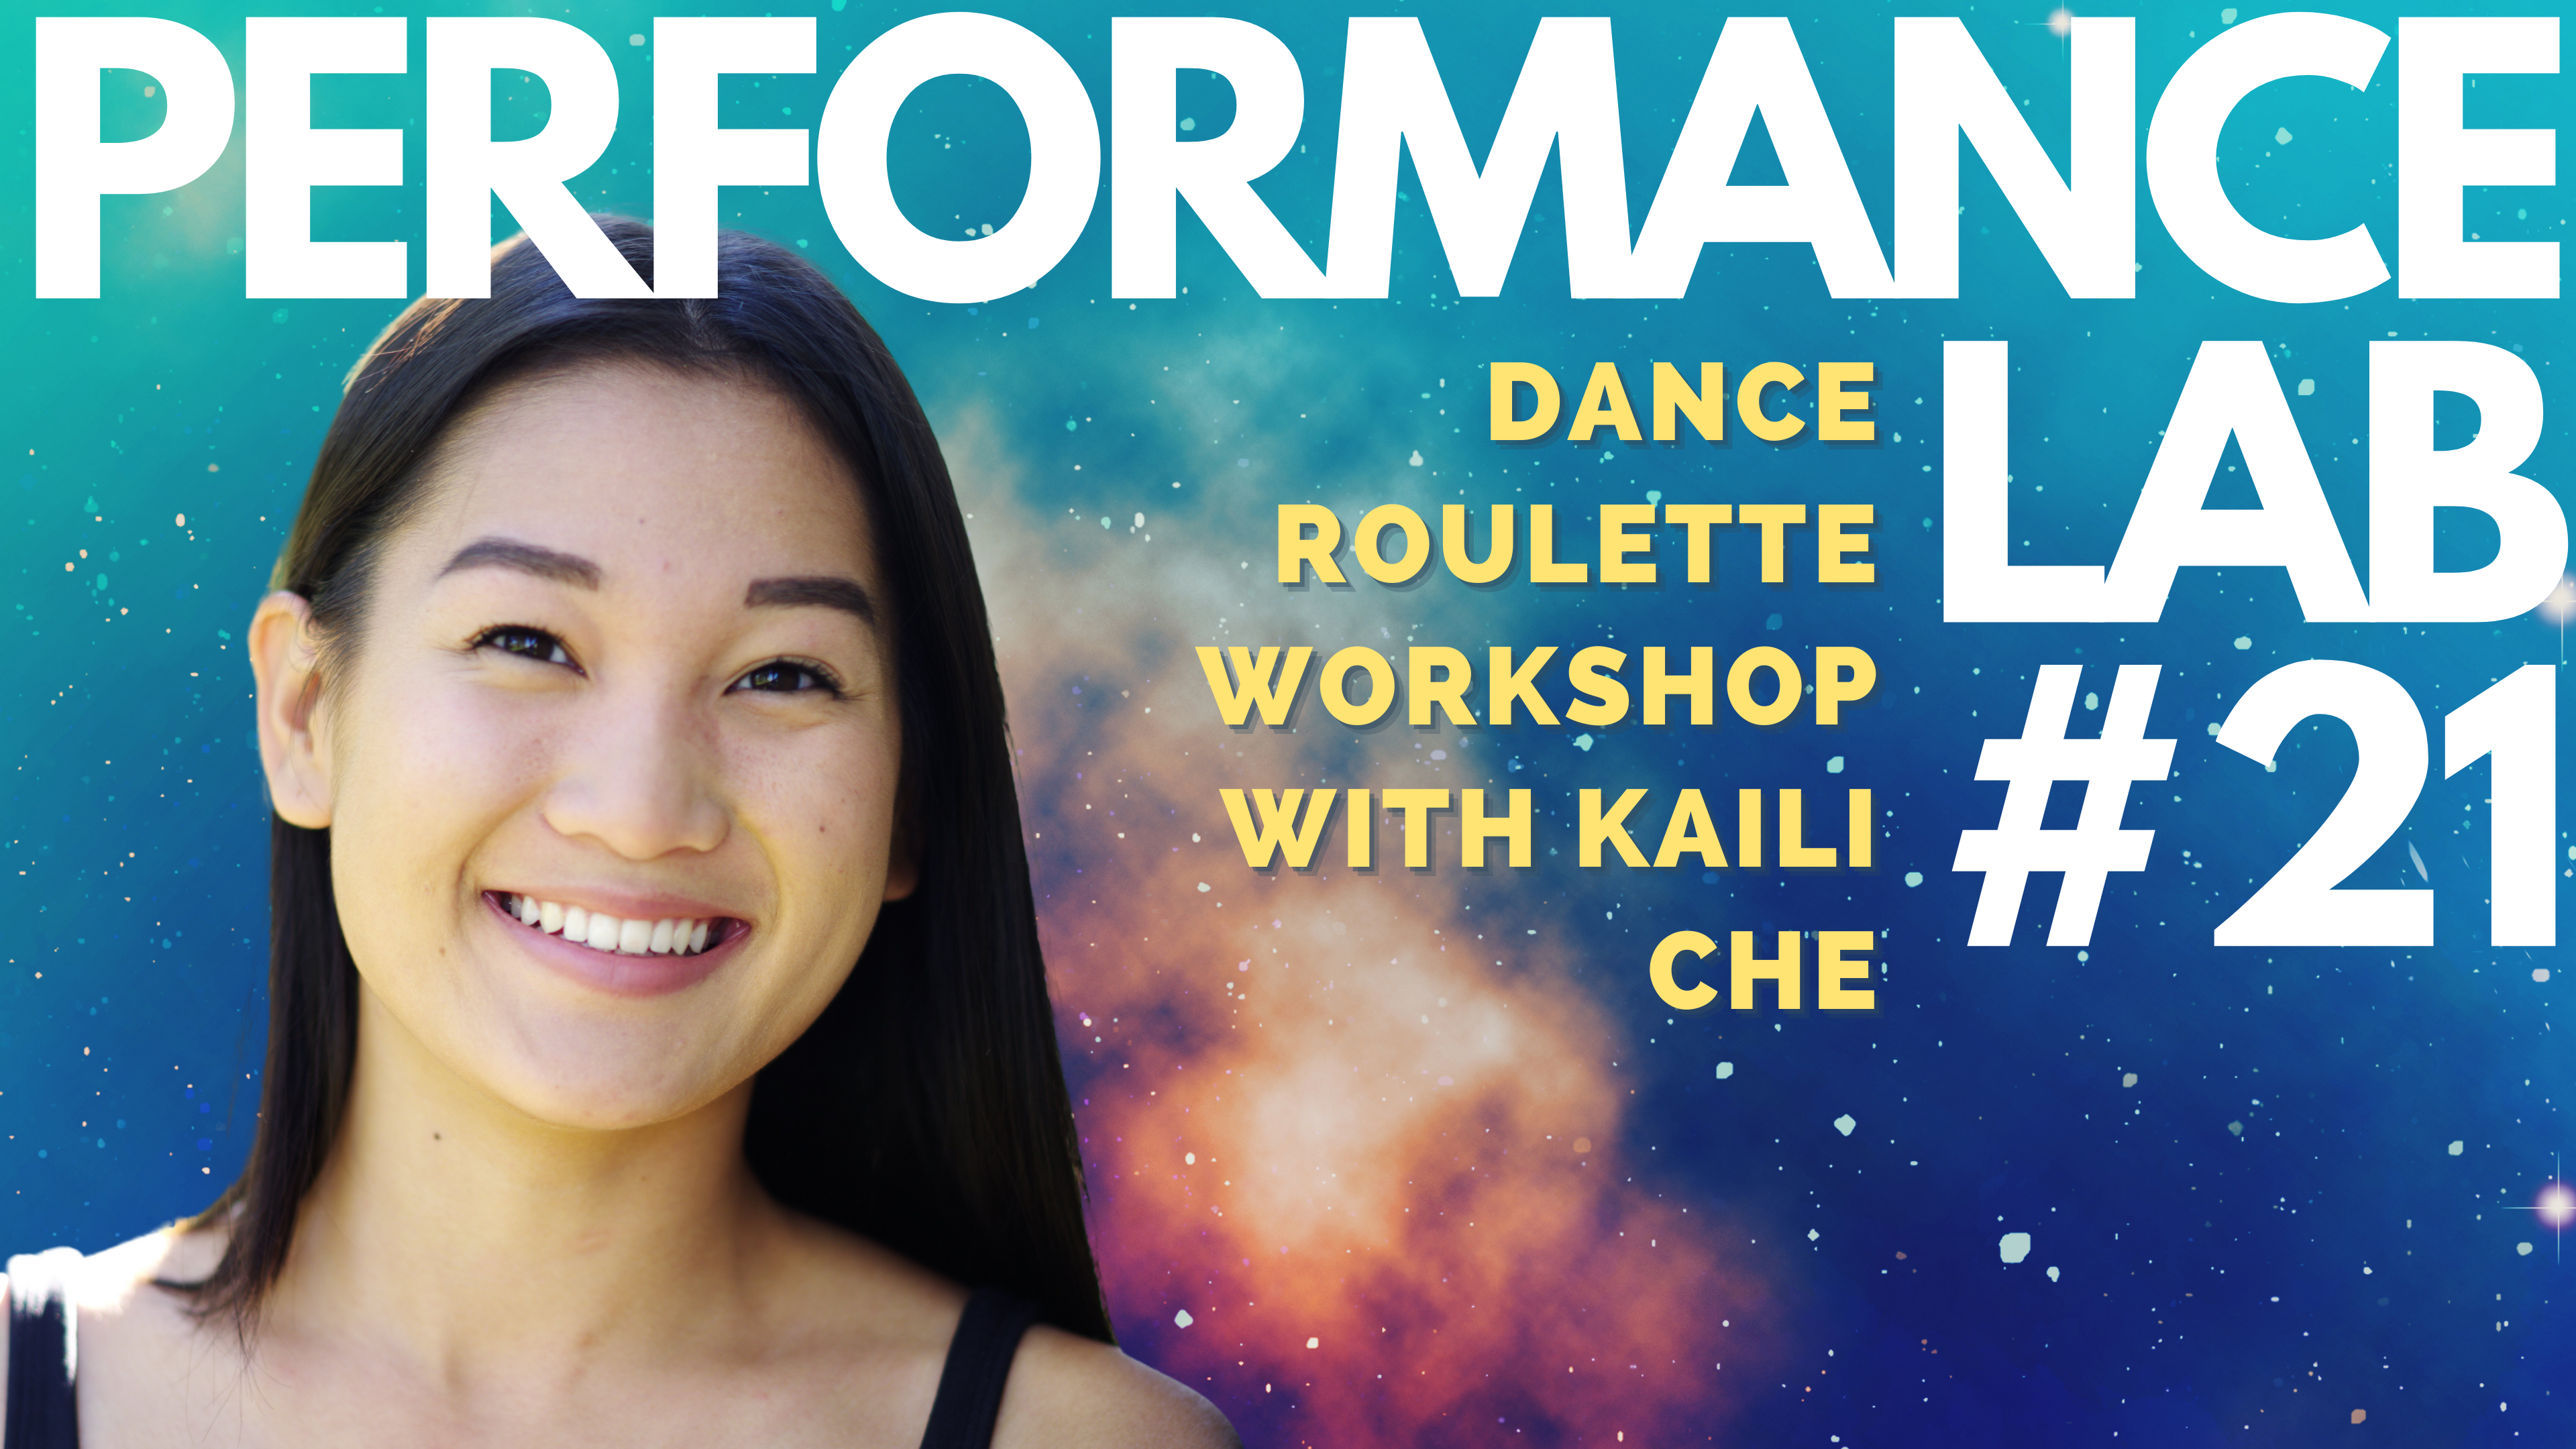 Kaili Che, with the text PERFORMANCE LAB #21. Dance roulette workshop with Kaili Che, Link in Bio. Kaili and text are layered on a background of a bright blue, indigo and orange galaxy.